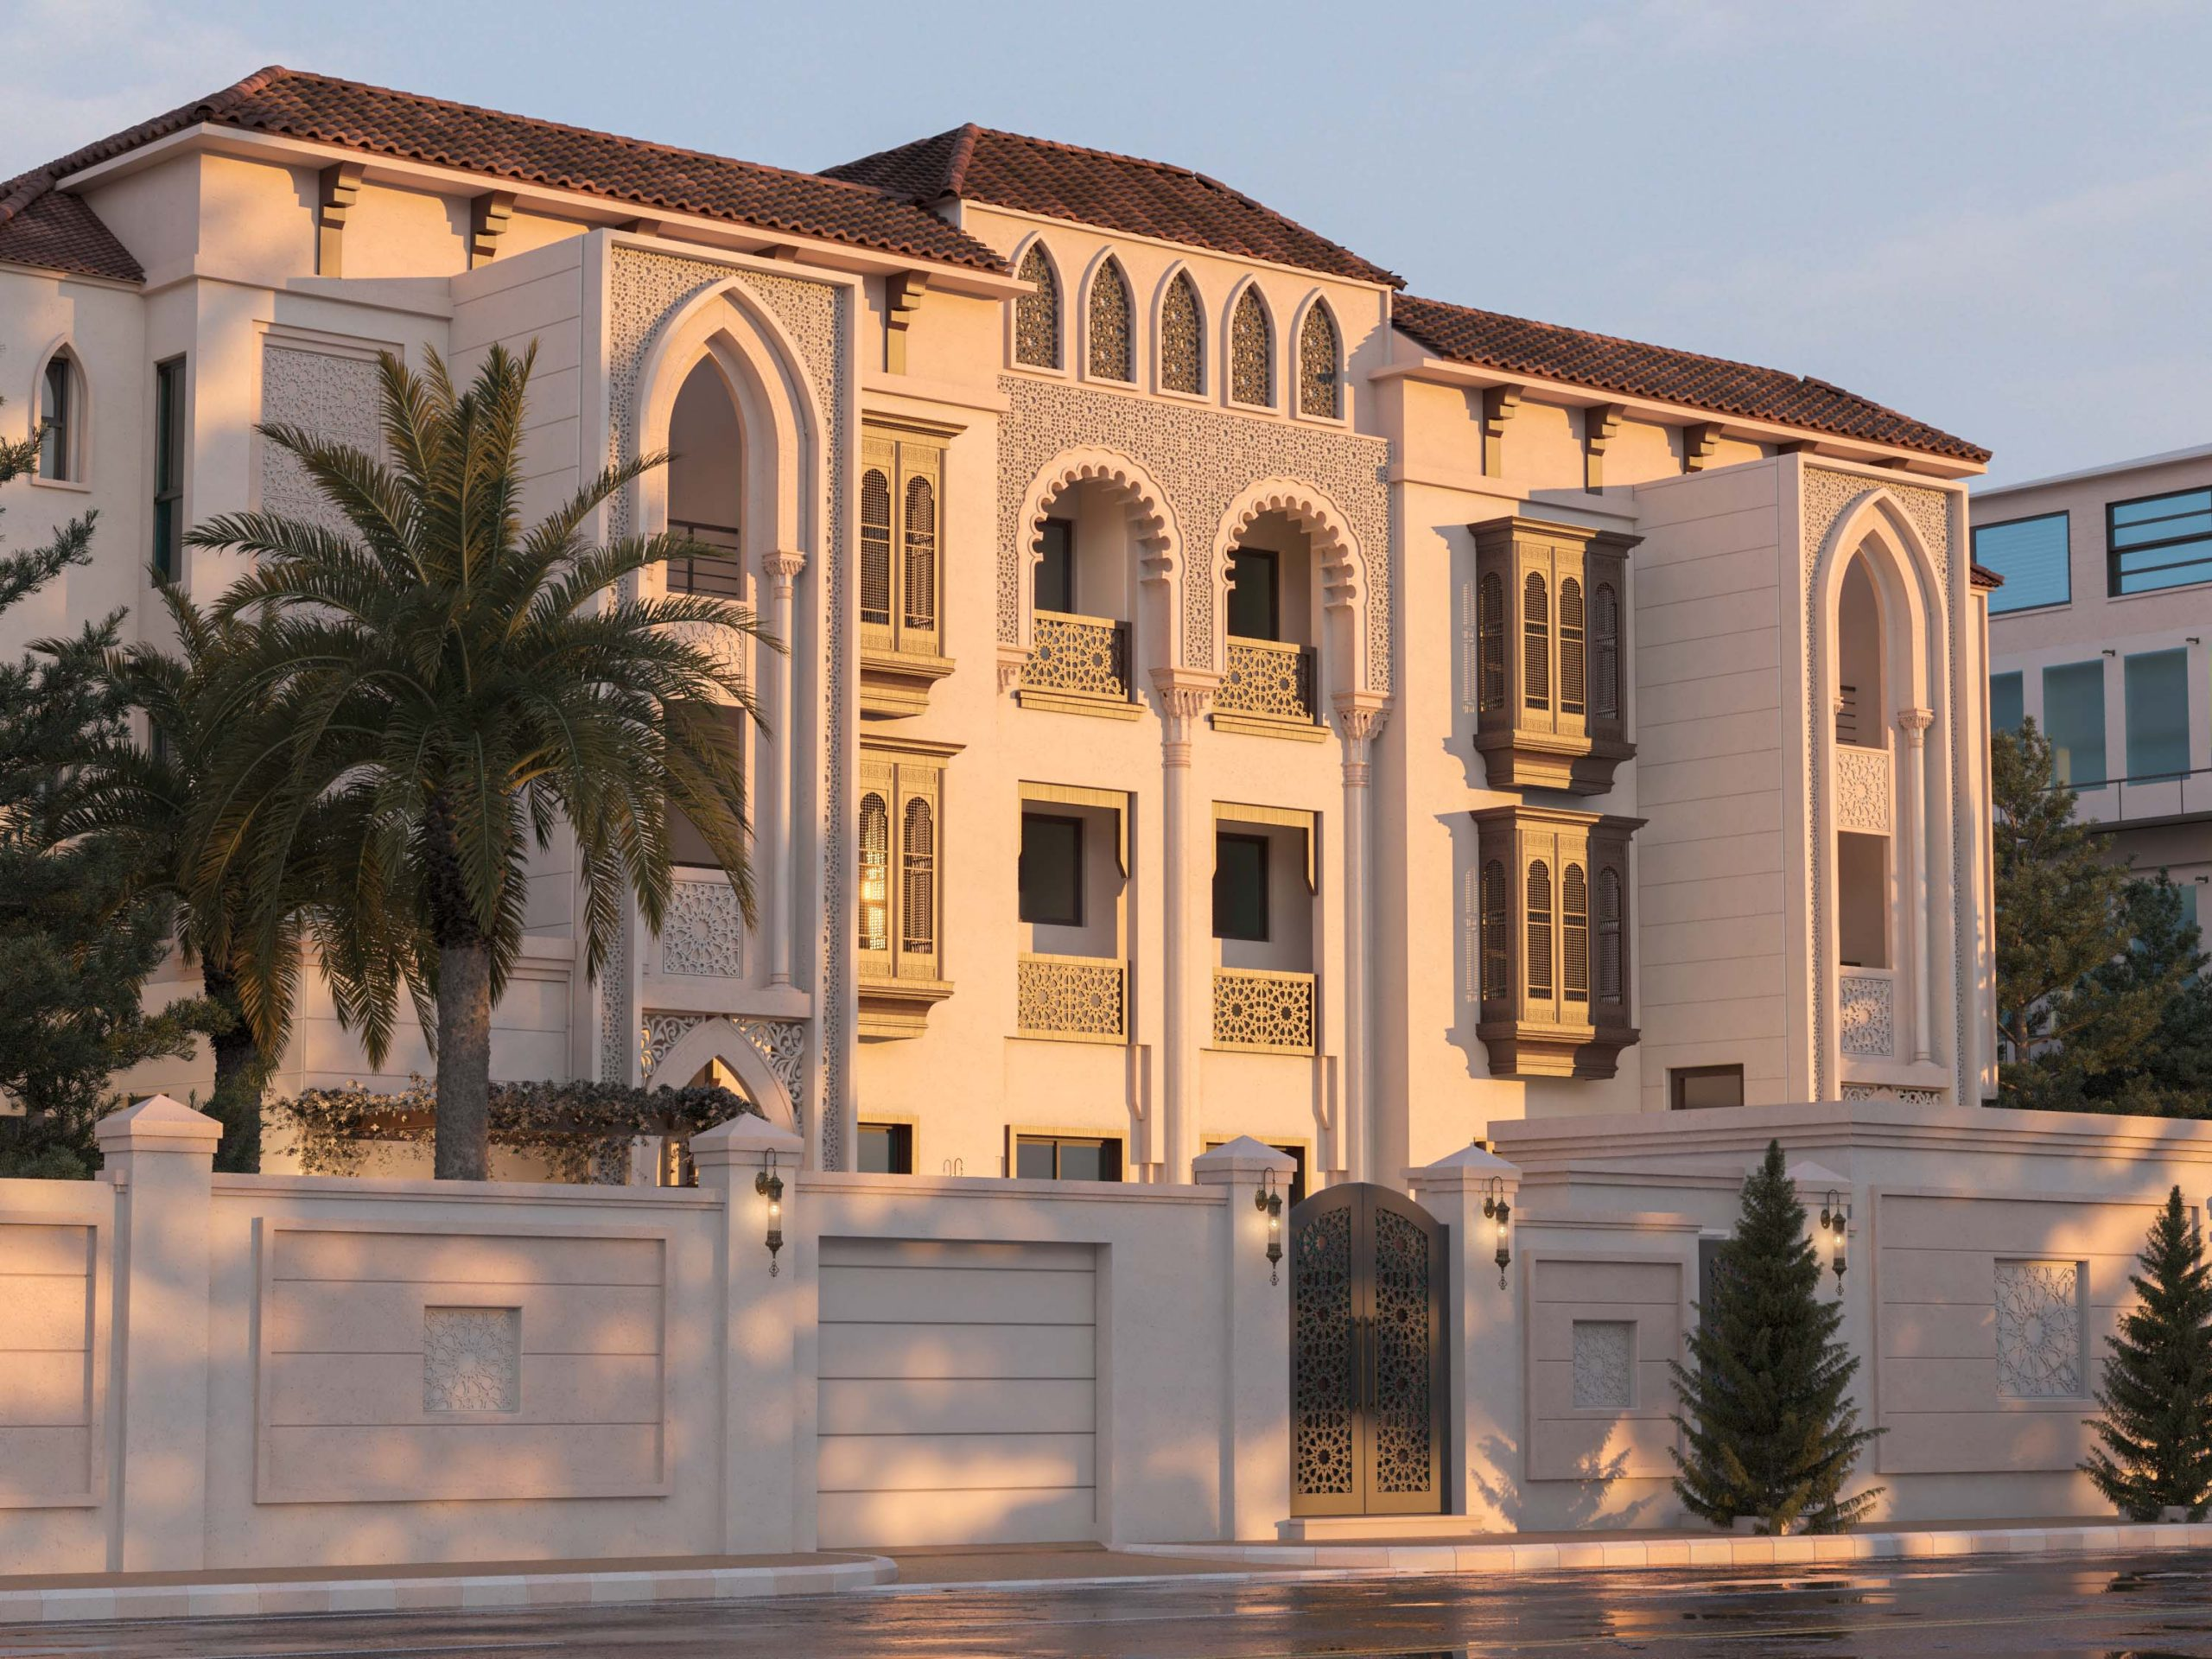 ANDALUSIAN EXTERIOR DESIGN - FULL VIEW - ISLAMIC DETAILS - SKY